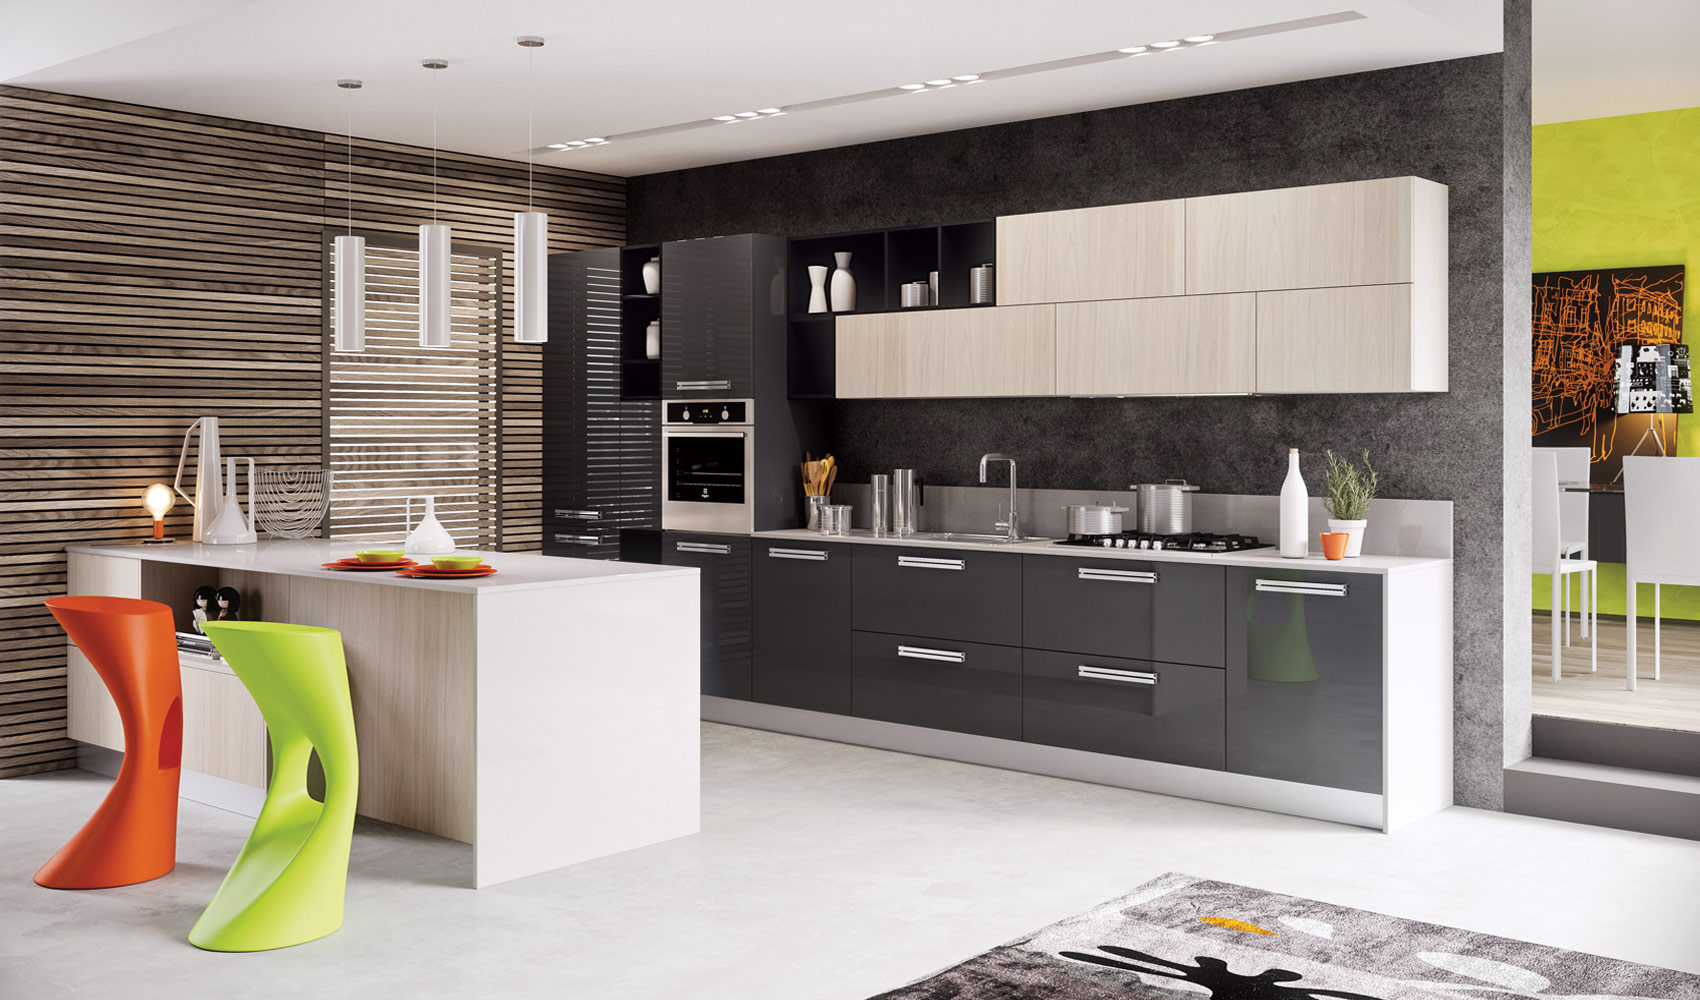 Contemporary kitchen design interior design ideas for Kitchen interior design styles